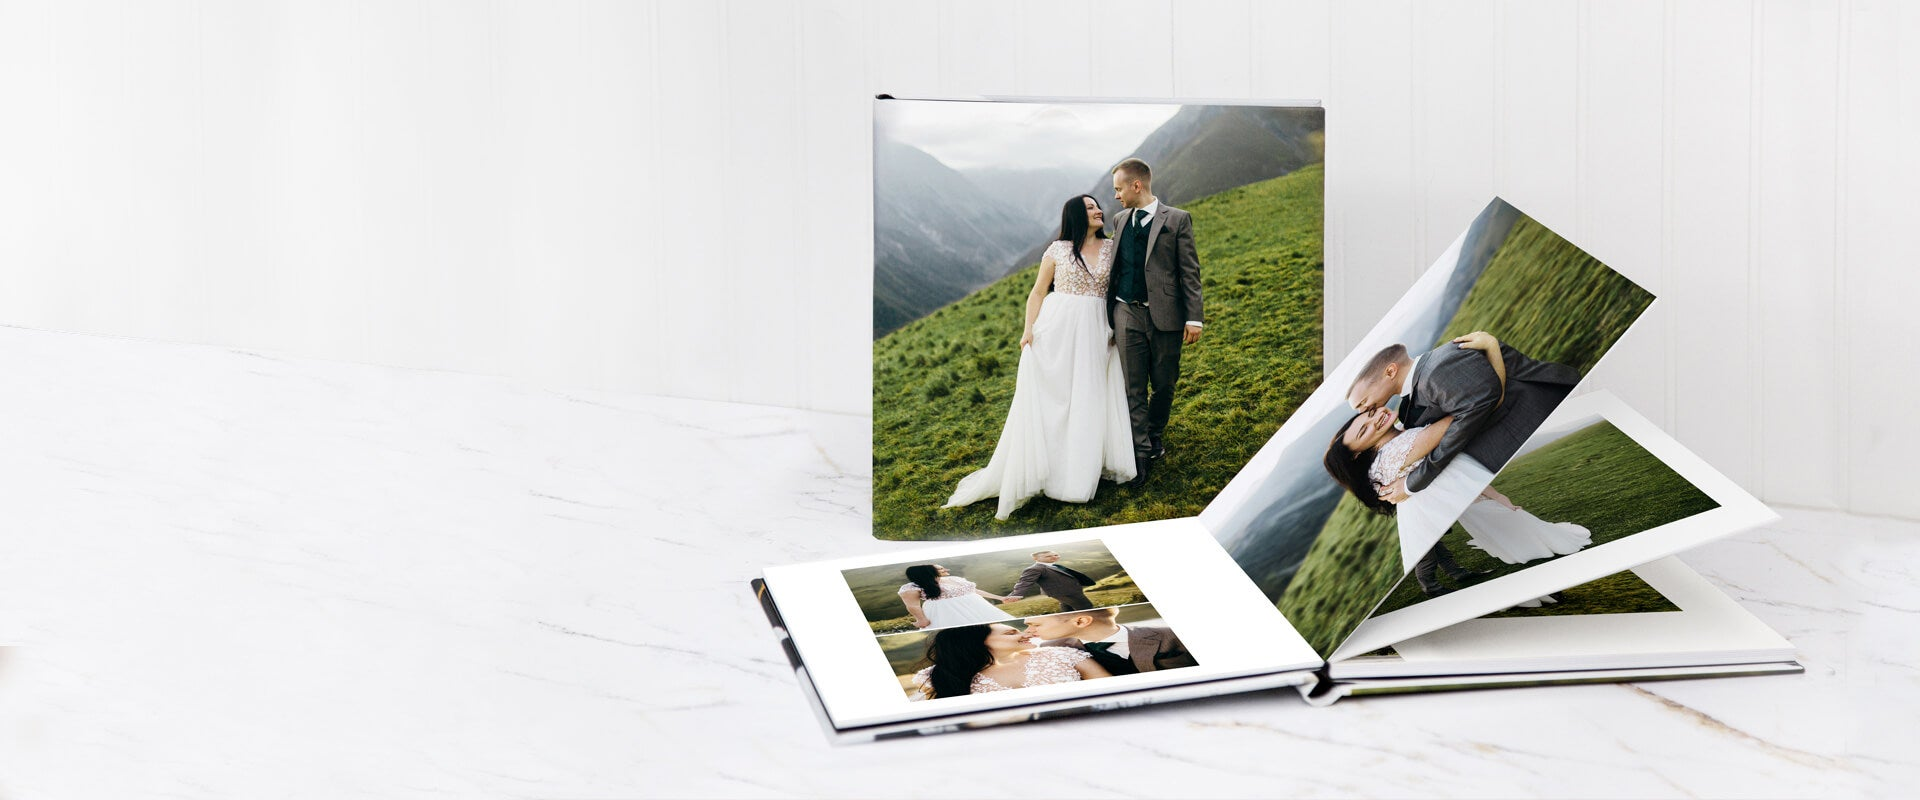 Wedding Albums Adoramapix